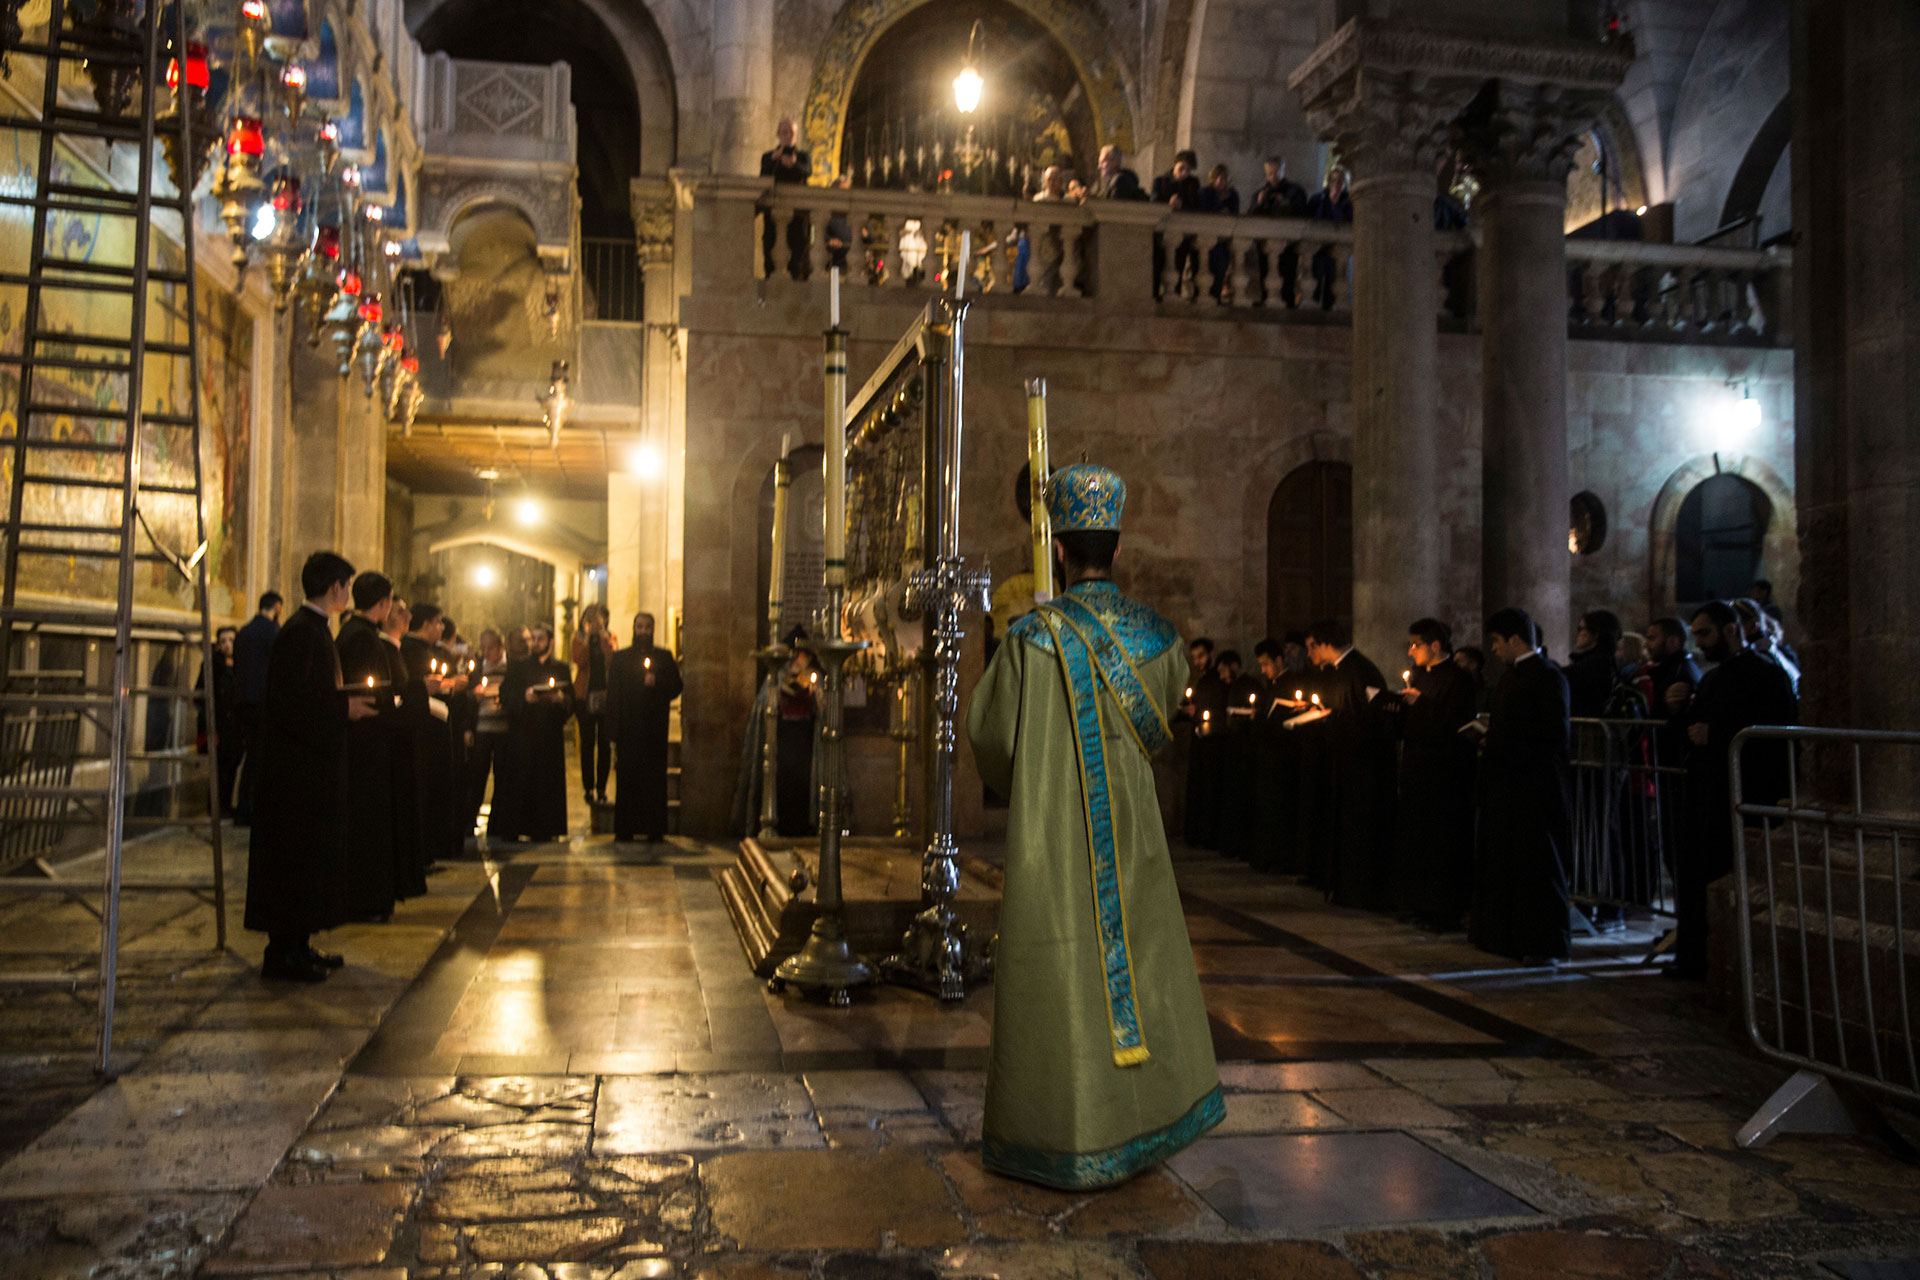 Armenian Orthodox Priests chanting at the Stone of Anointing, which is also called the Stone of Unction inside the Church of the Holy Sepulchre in the Old City of Jerusalem on March 30,2018.This stone marks the place where Jesus' body was prepared for burial after He was taken down from the cross. Christians around the world today marked Good Friday,commemorating the crucifixion of Jesus Christ and his death at Calvary. (Photo by Heidi Levine for The GroundTruth Project)